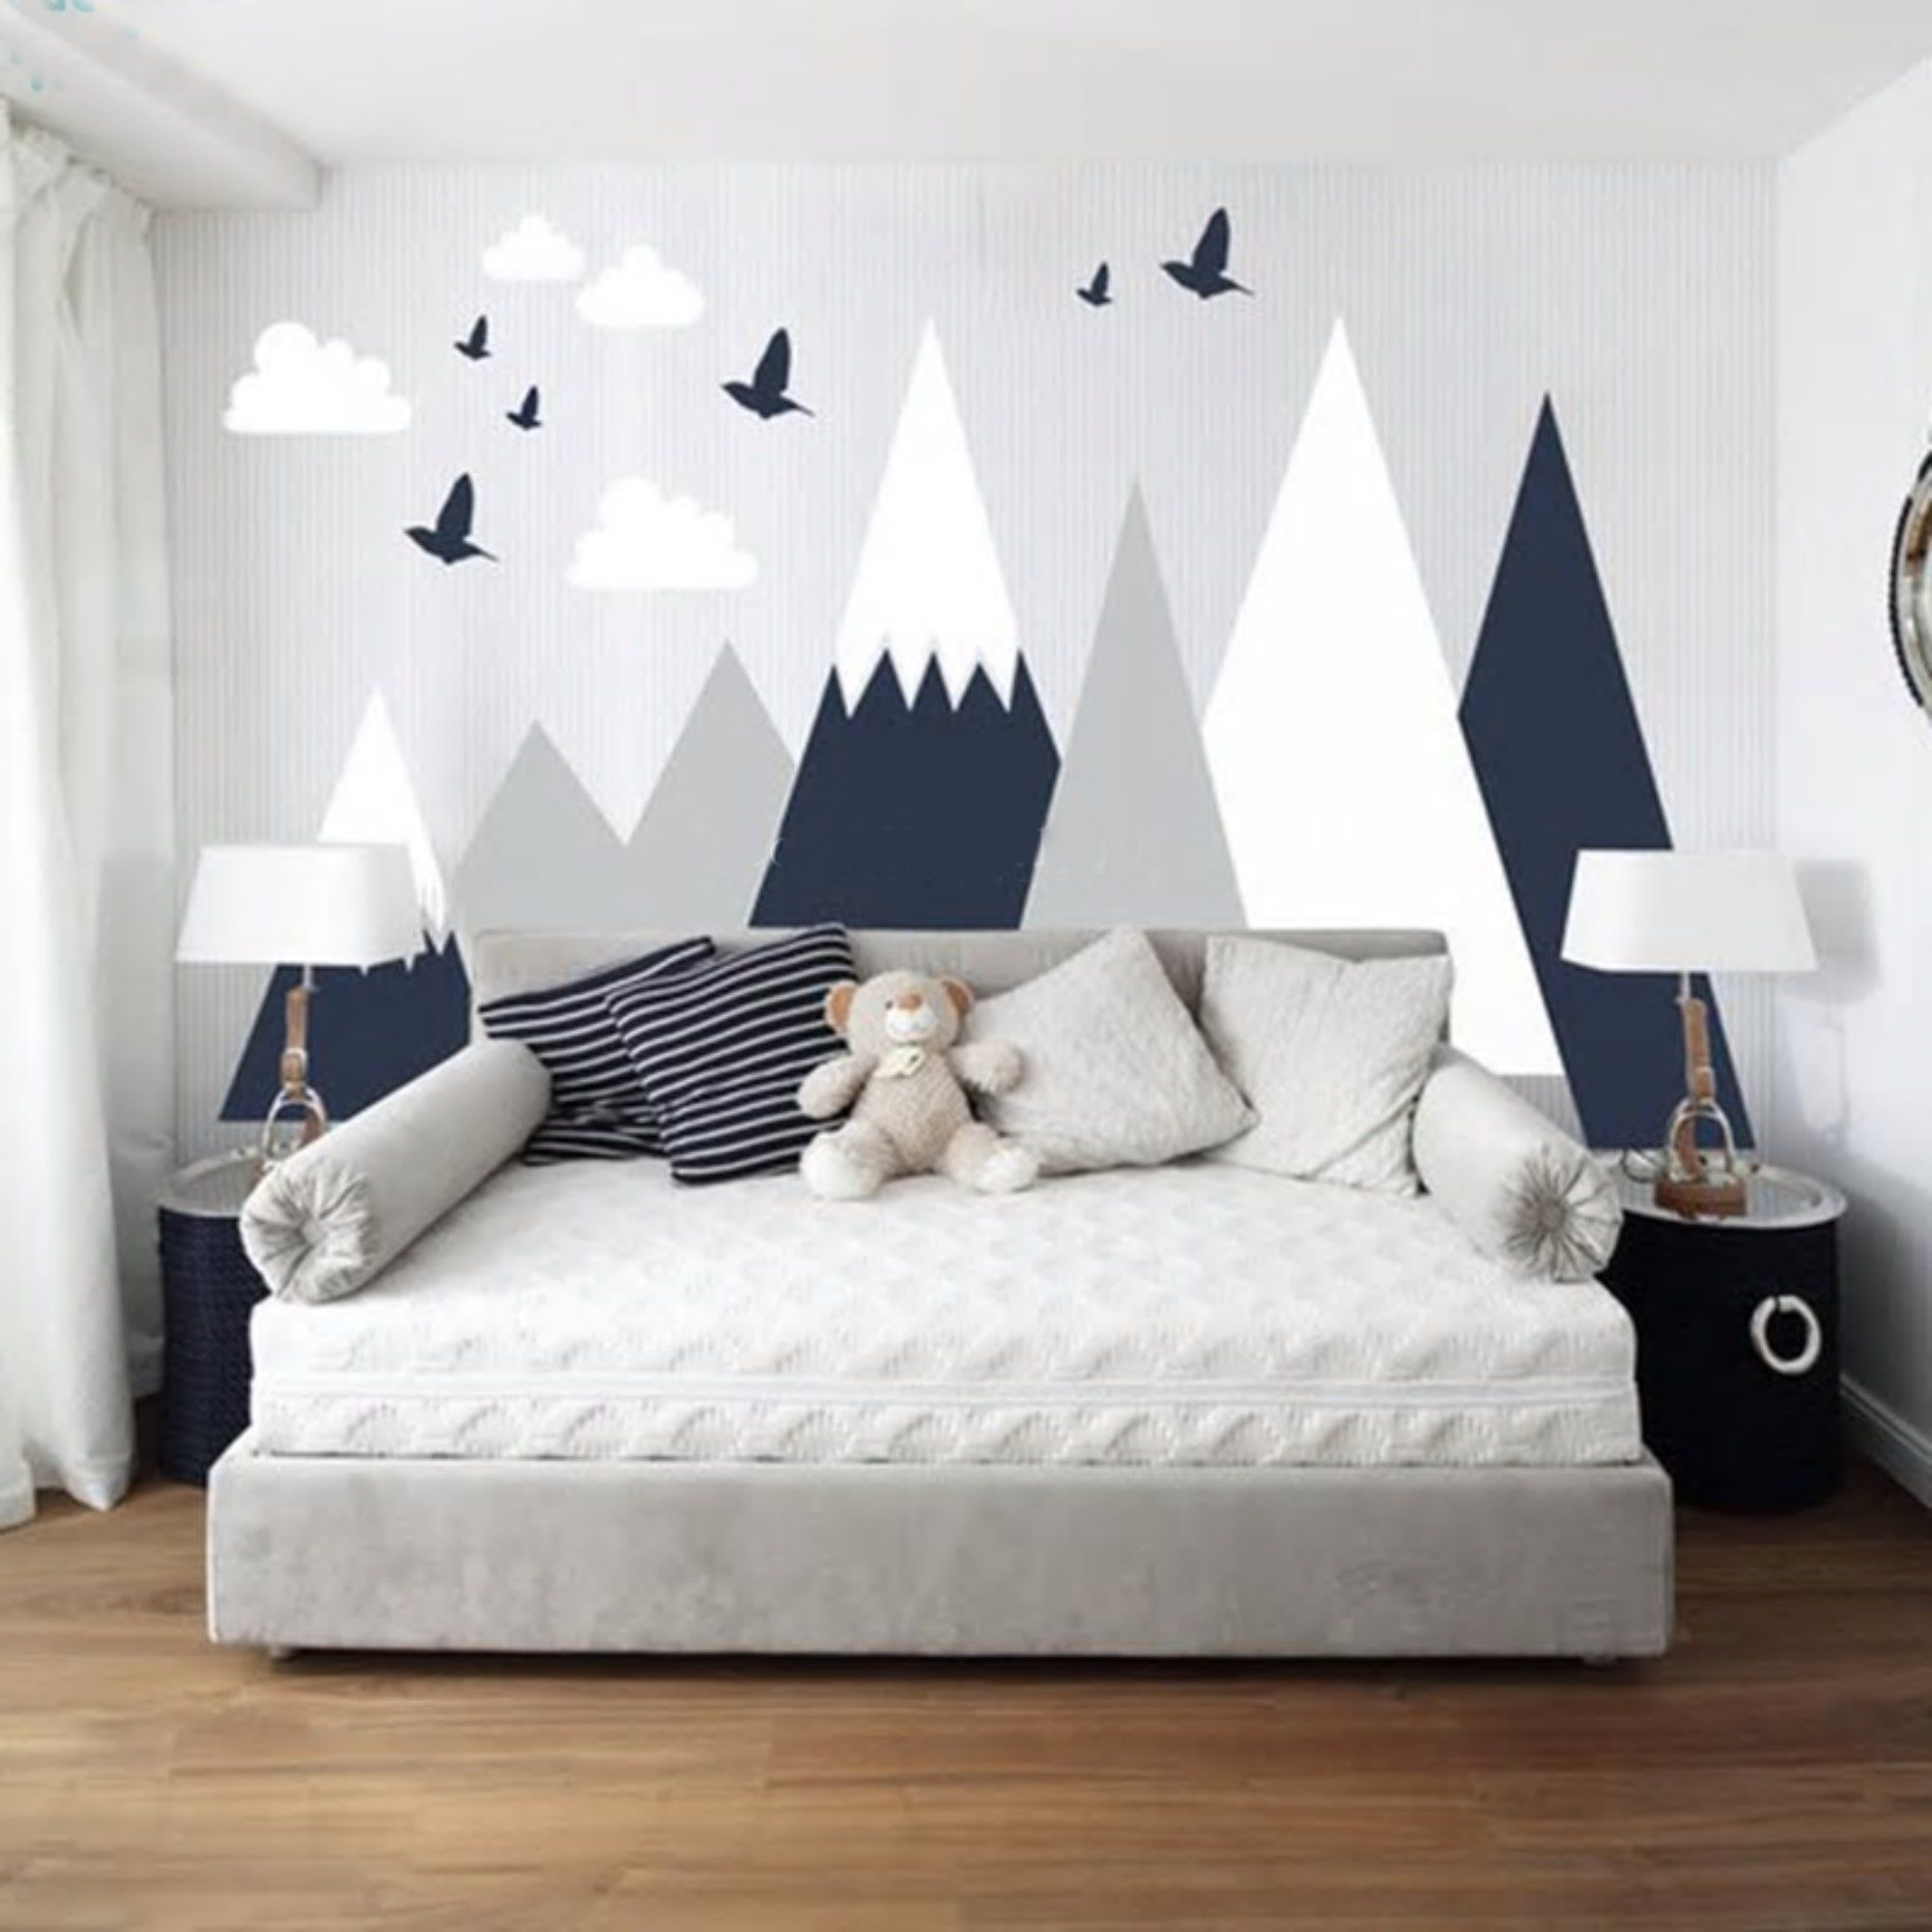 Best Large Mountain Mural For Childrens Bedroom In 2020 Baby 640 x 480